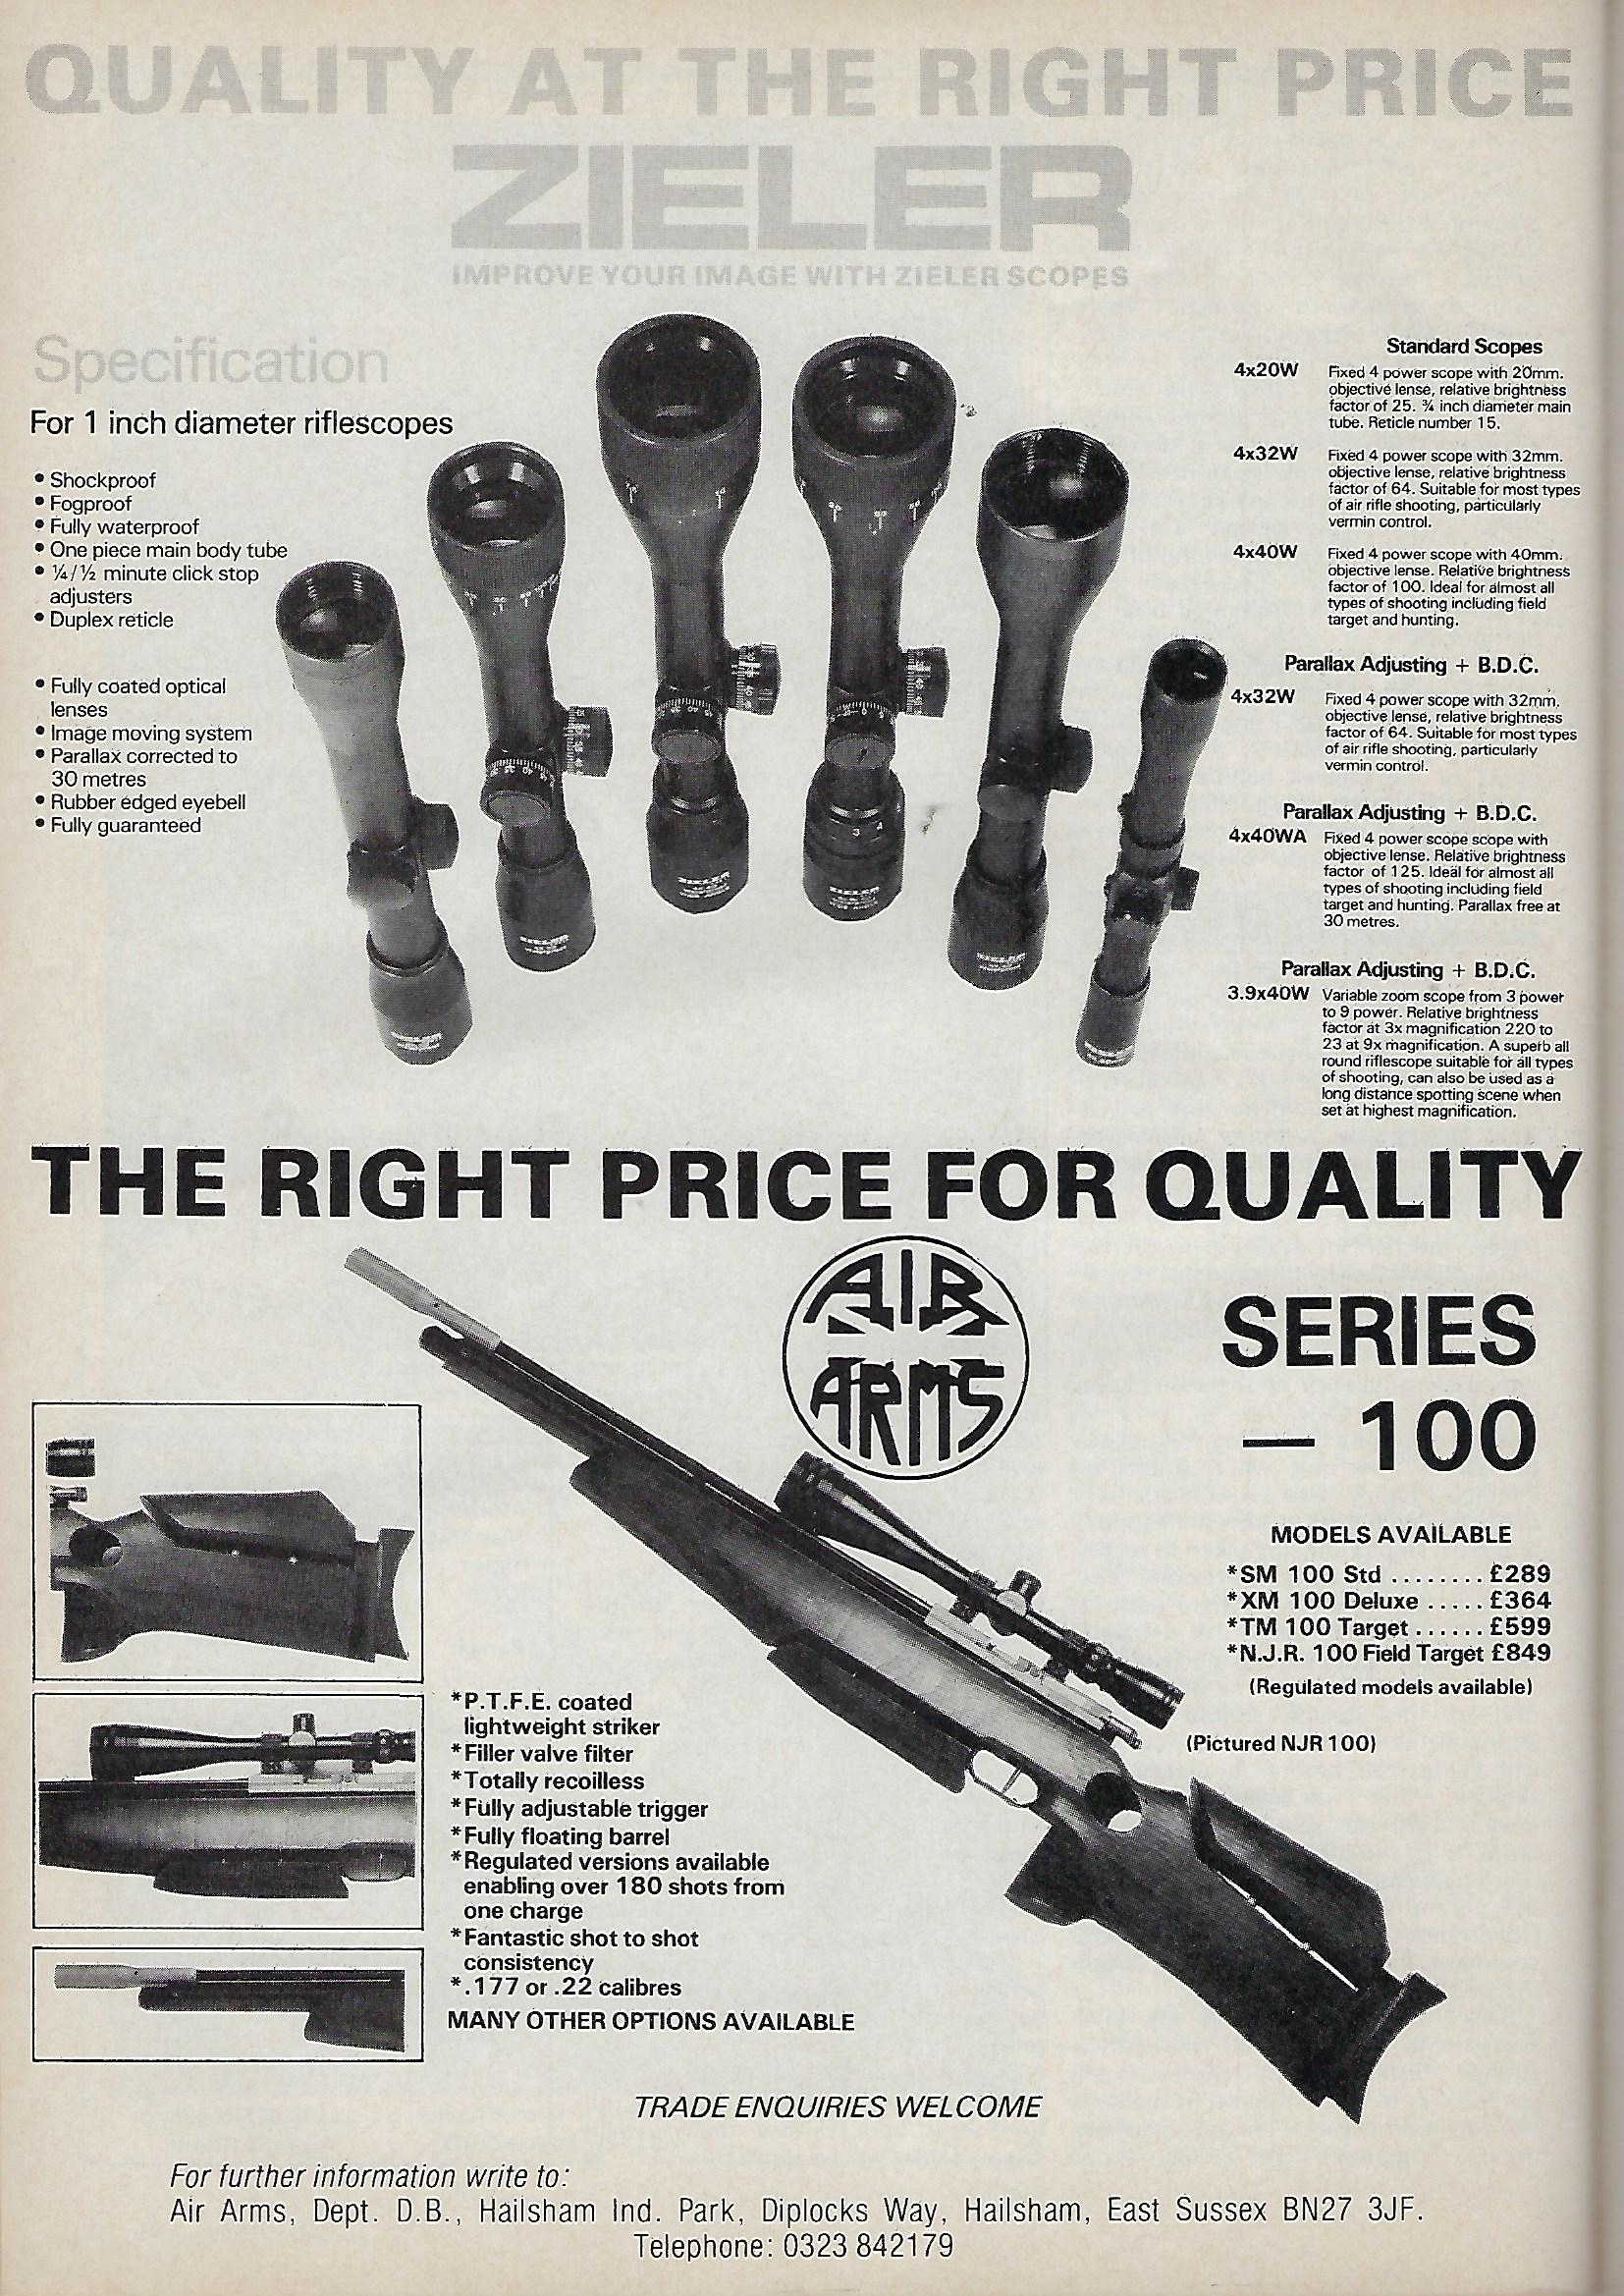 AGW - MAY 1990 - AA AD - 100 SERIES AND ZEILER SCOPES.jpg